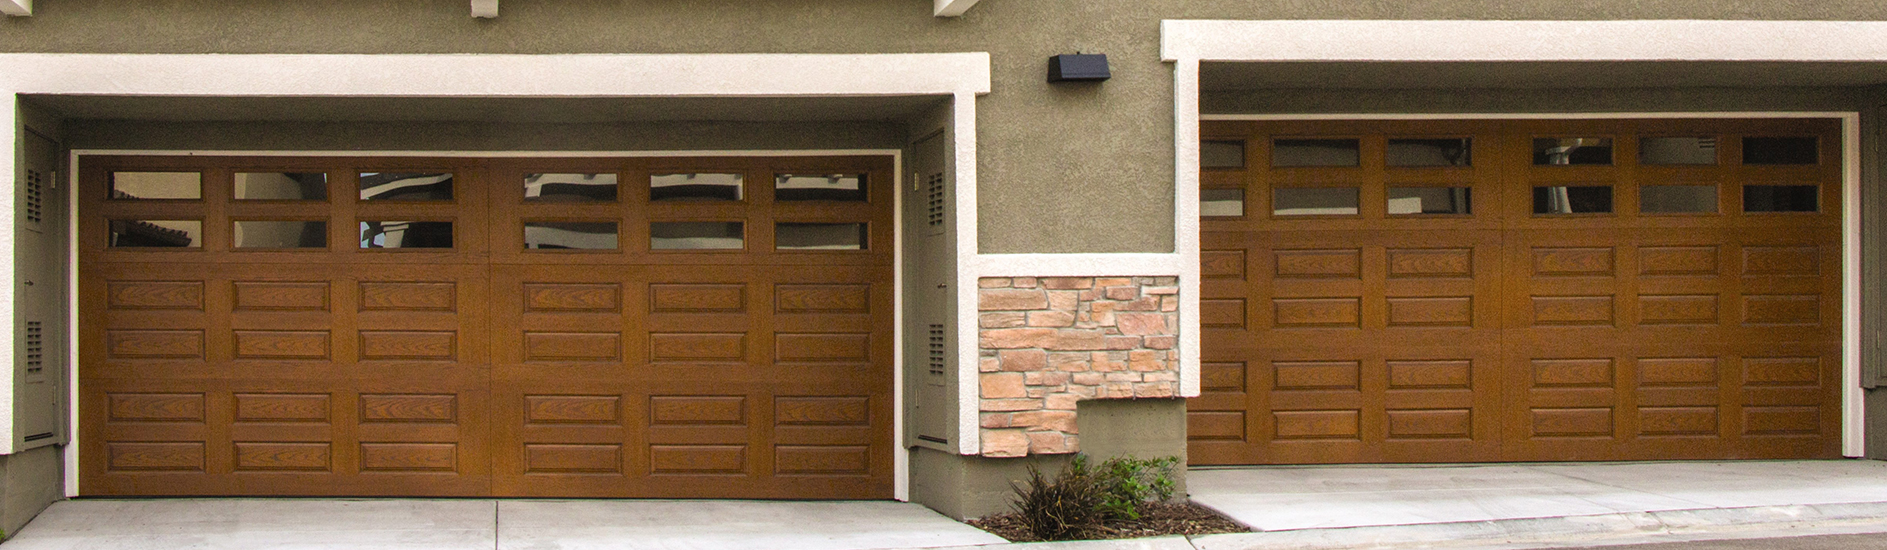 miranda doors garage picture door fiberglass